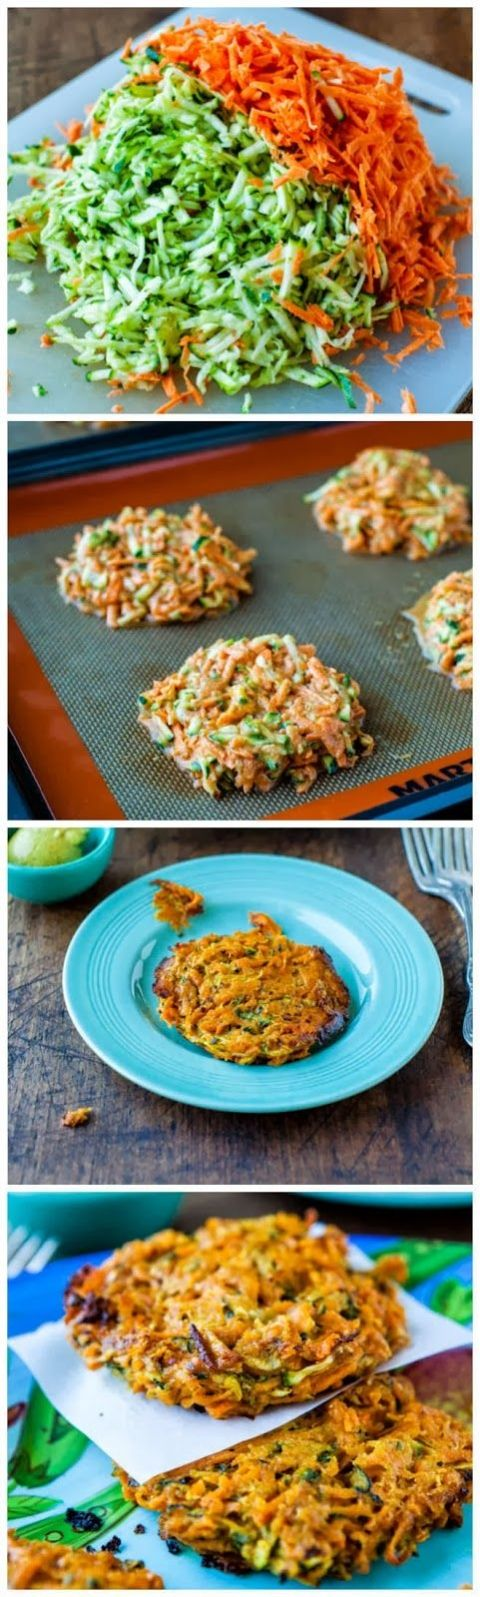 Baked Chipotle Sweet Potato and Zucchini Fritters - need to modify some, but could be worth a try